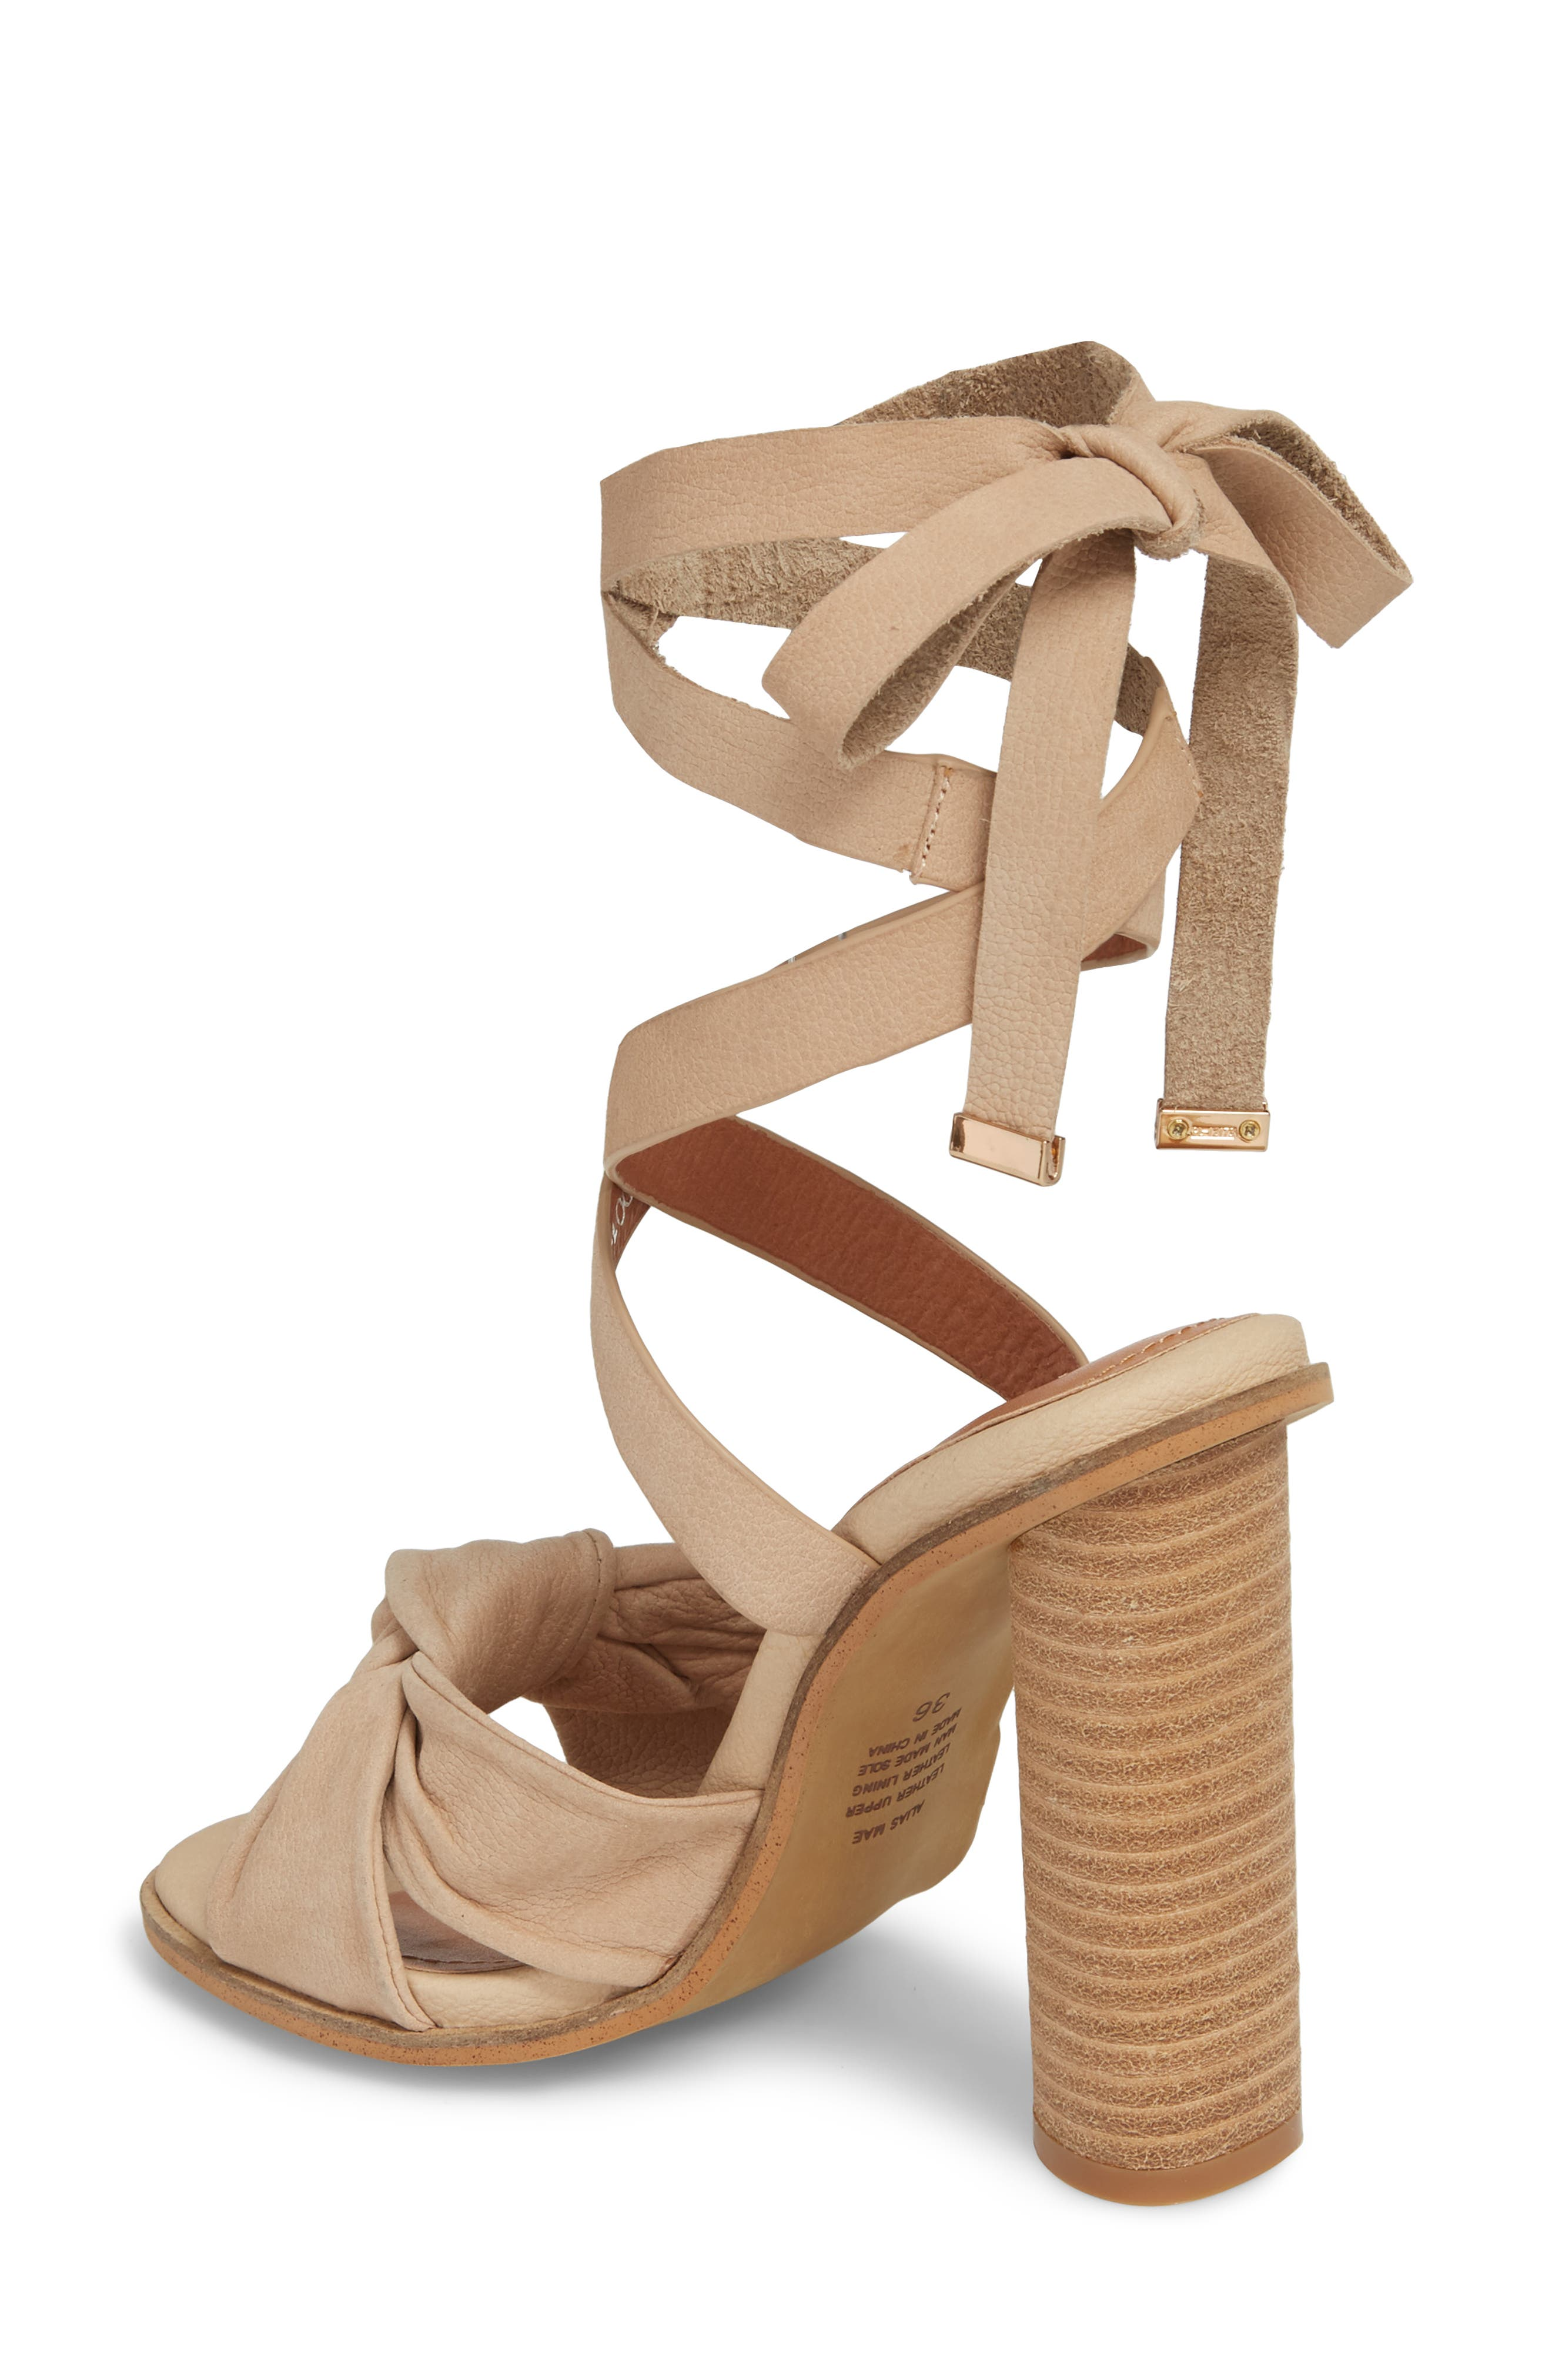 Africa Ankle Wrap Sandal,                             Alternate thumbnail 2, color,                             Natural Leather